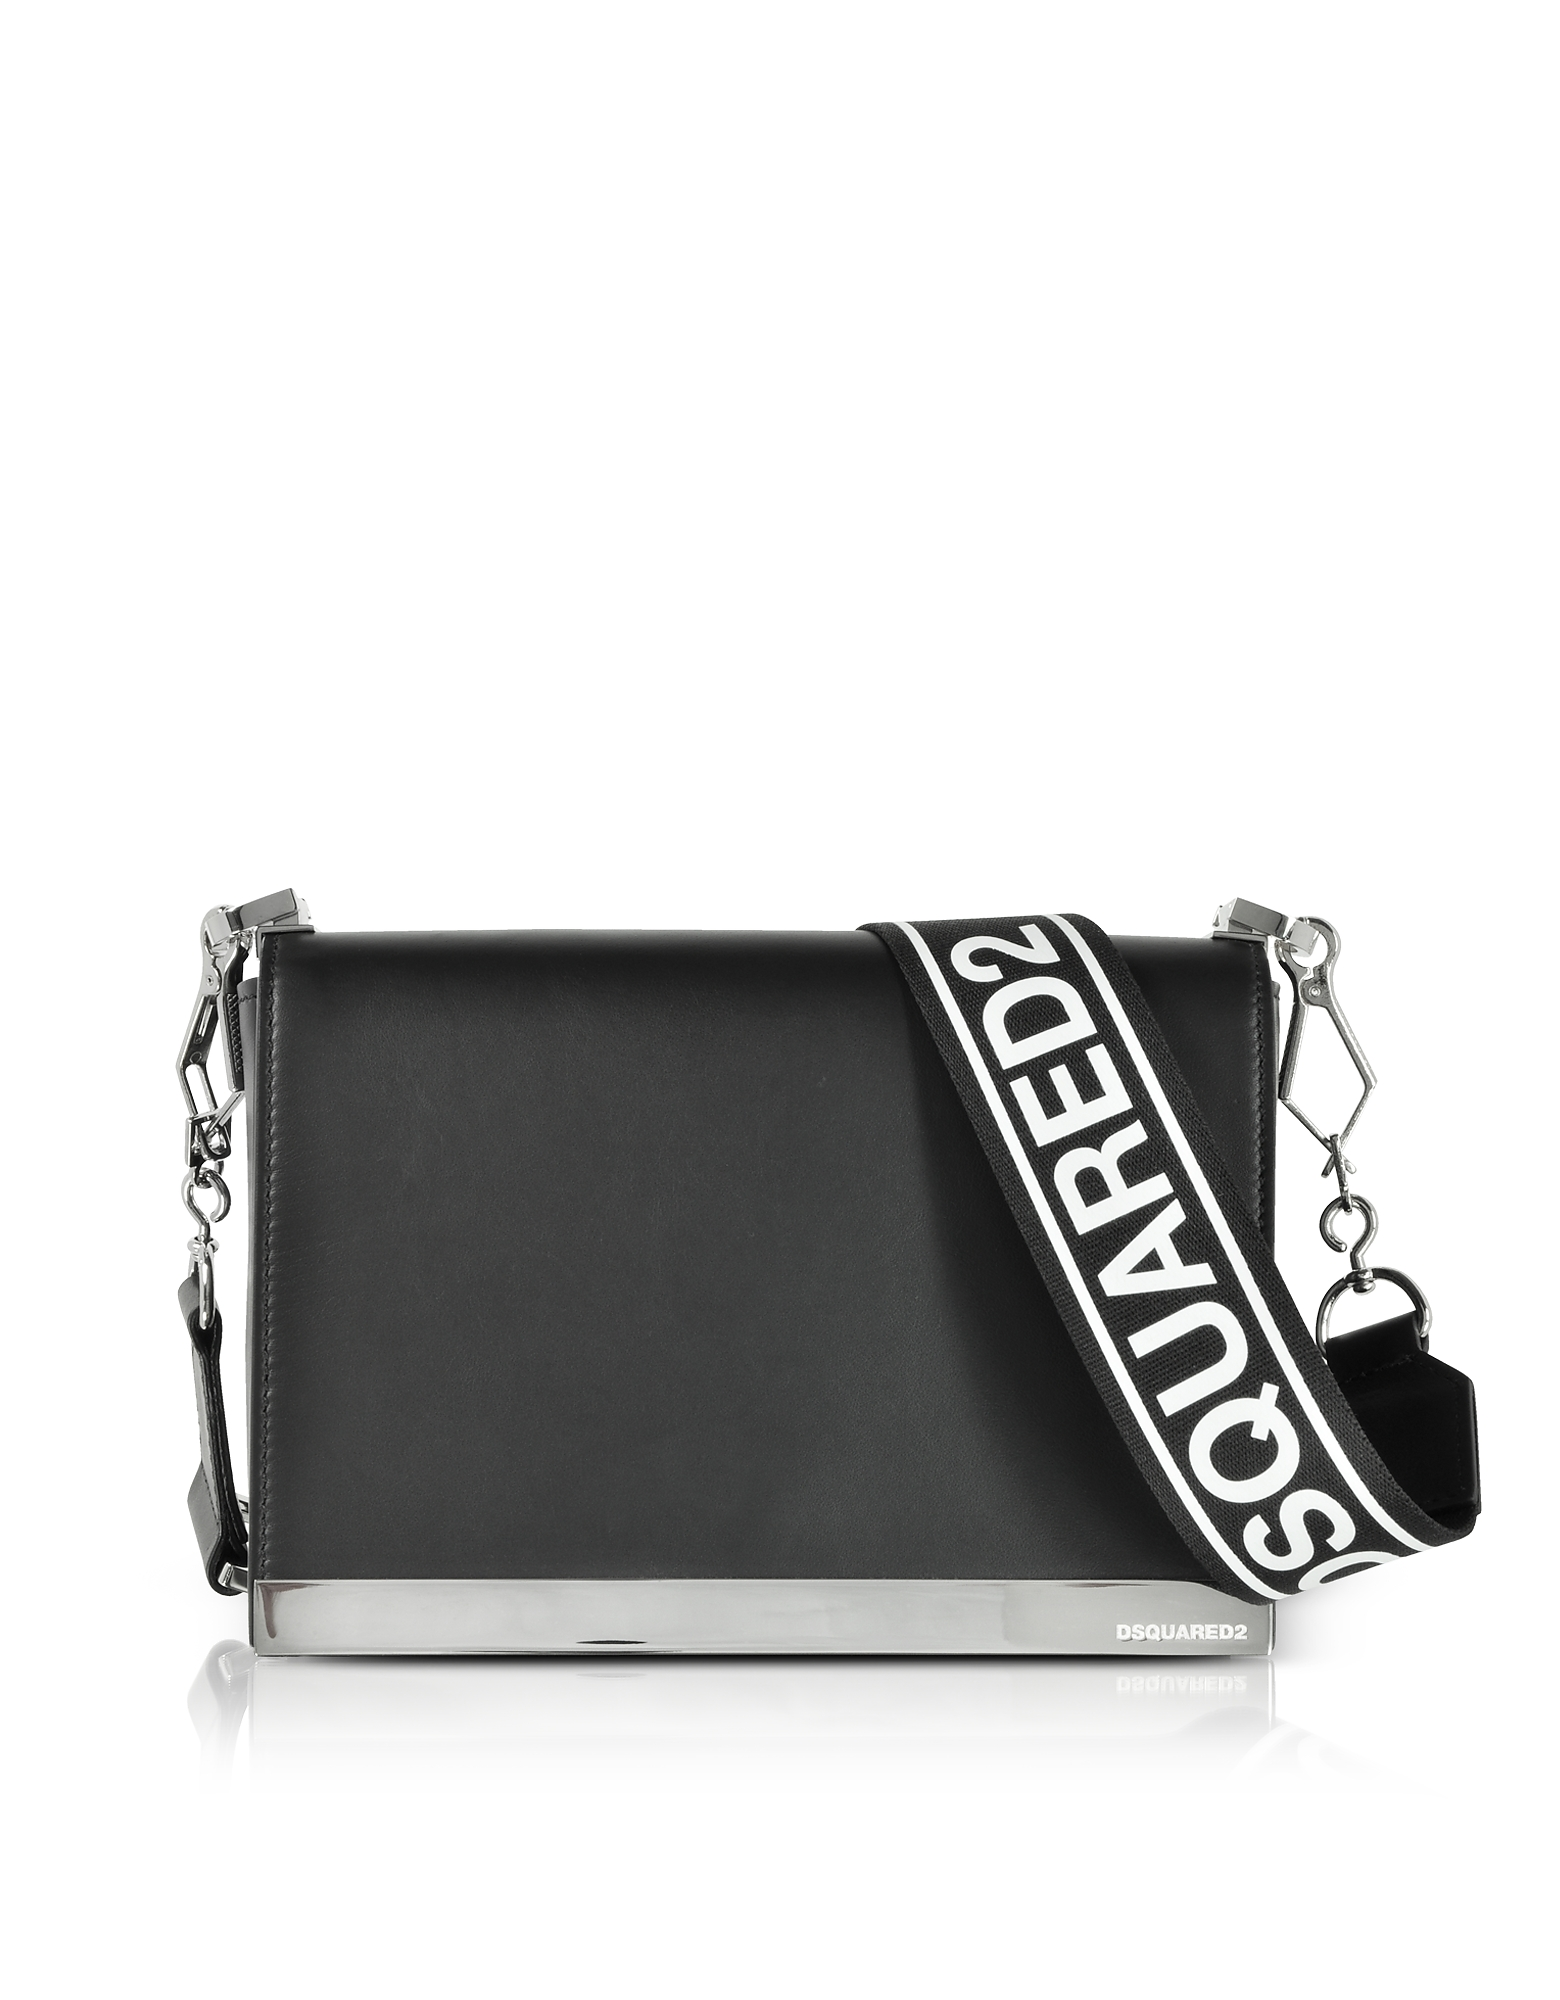 DSquared2 Handbags, Black Leather Small Shoulder Bag